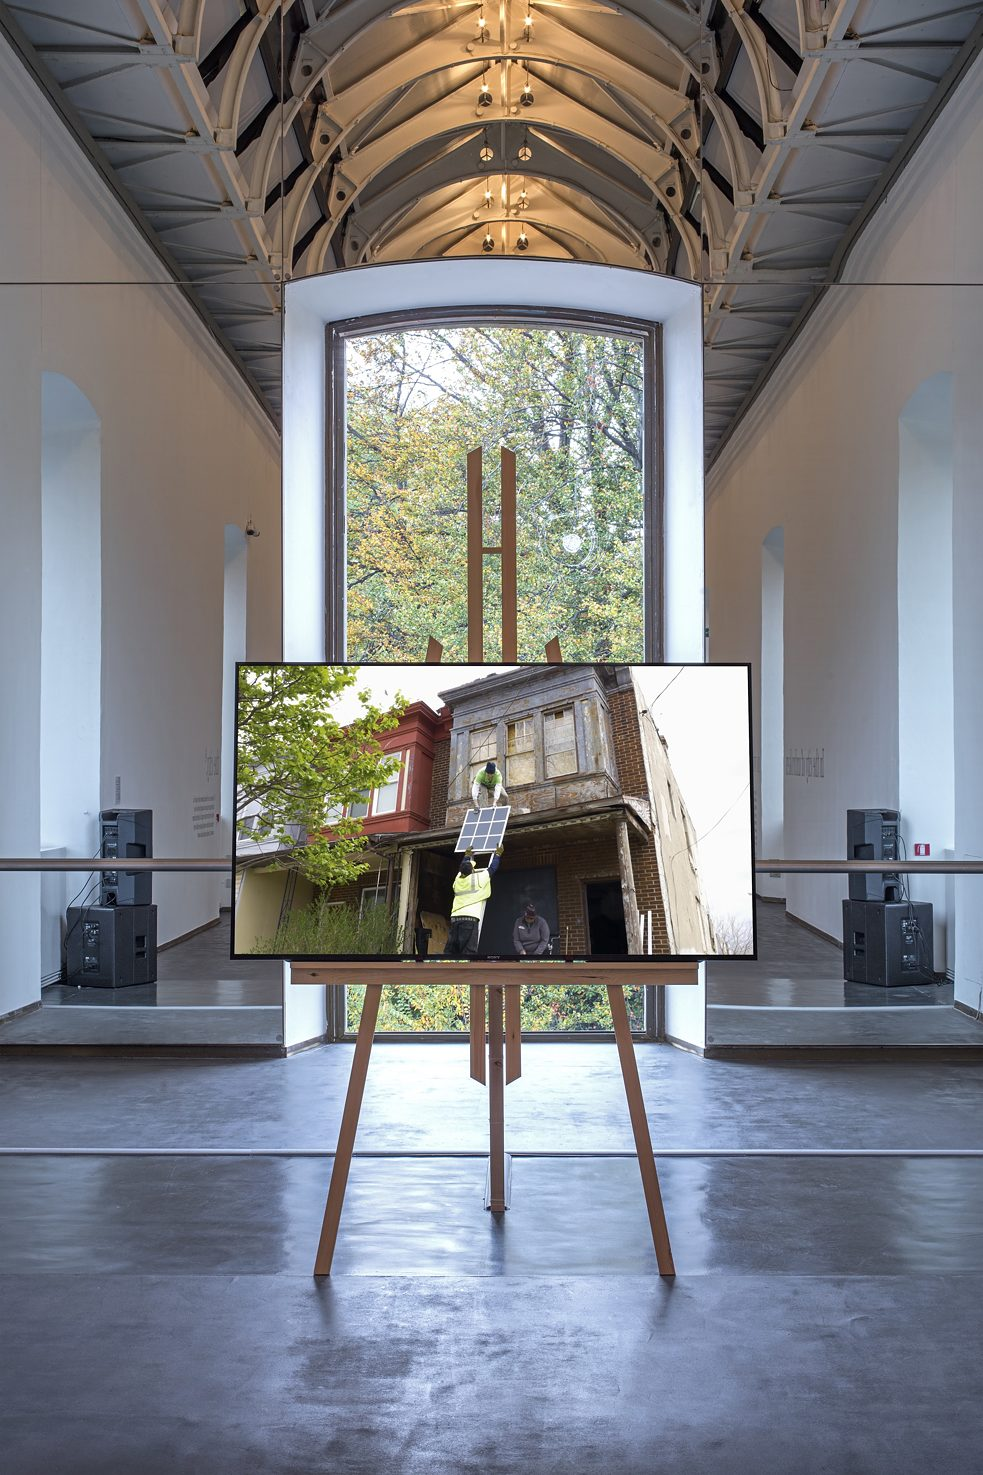 <i>Hito Steyerl. The City of Broken Windows</i> – Castello di Rivoli – Museo d'Arte Contemporanea, Rivoli (Torino) – Veduta della mostra, 2018